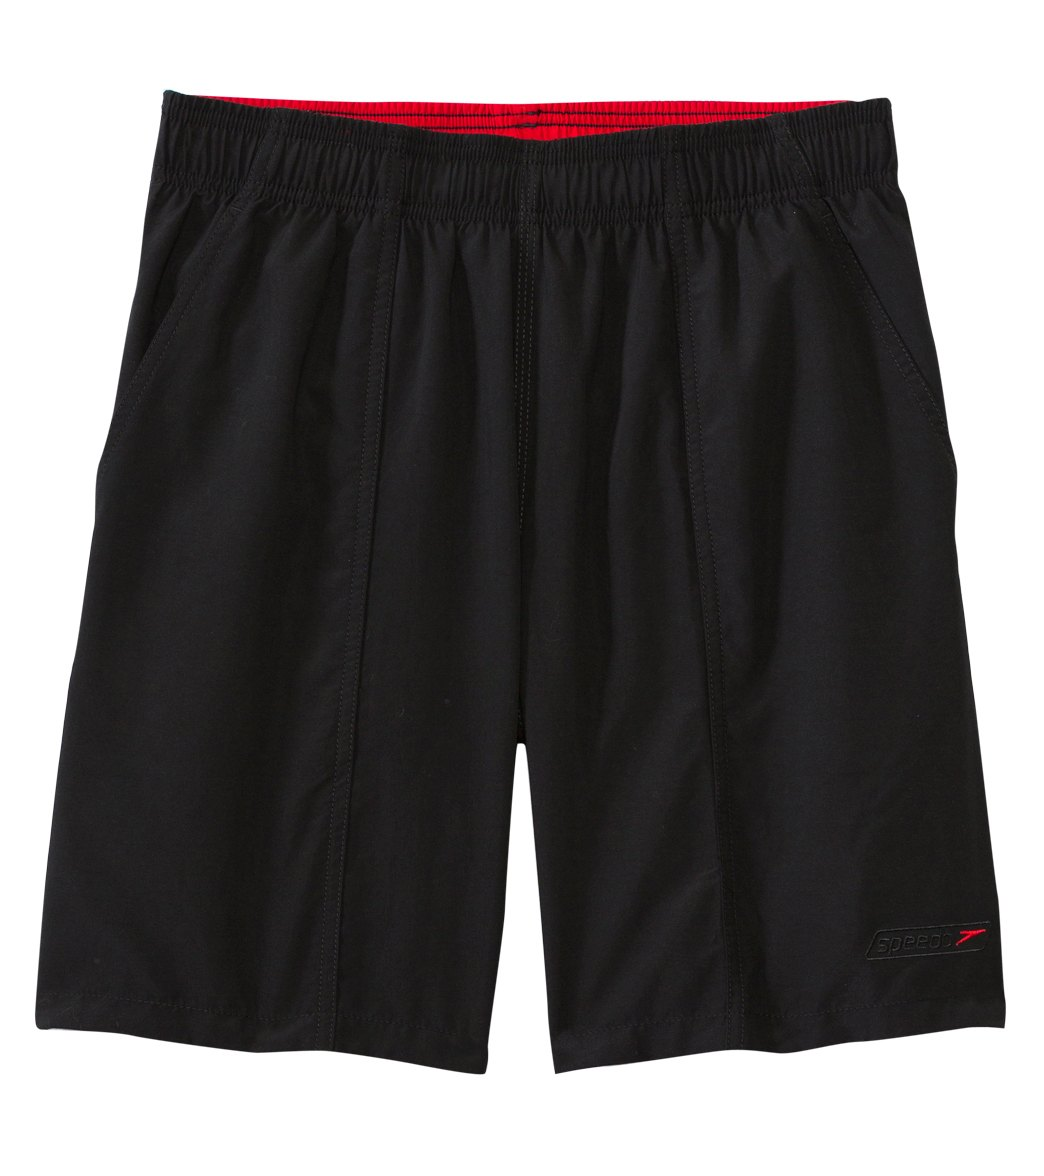 fa20b69440 Speedo Men's Rally Volley Short at SwimOutlet.com